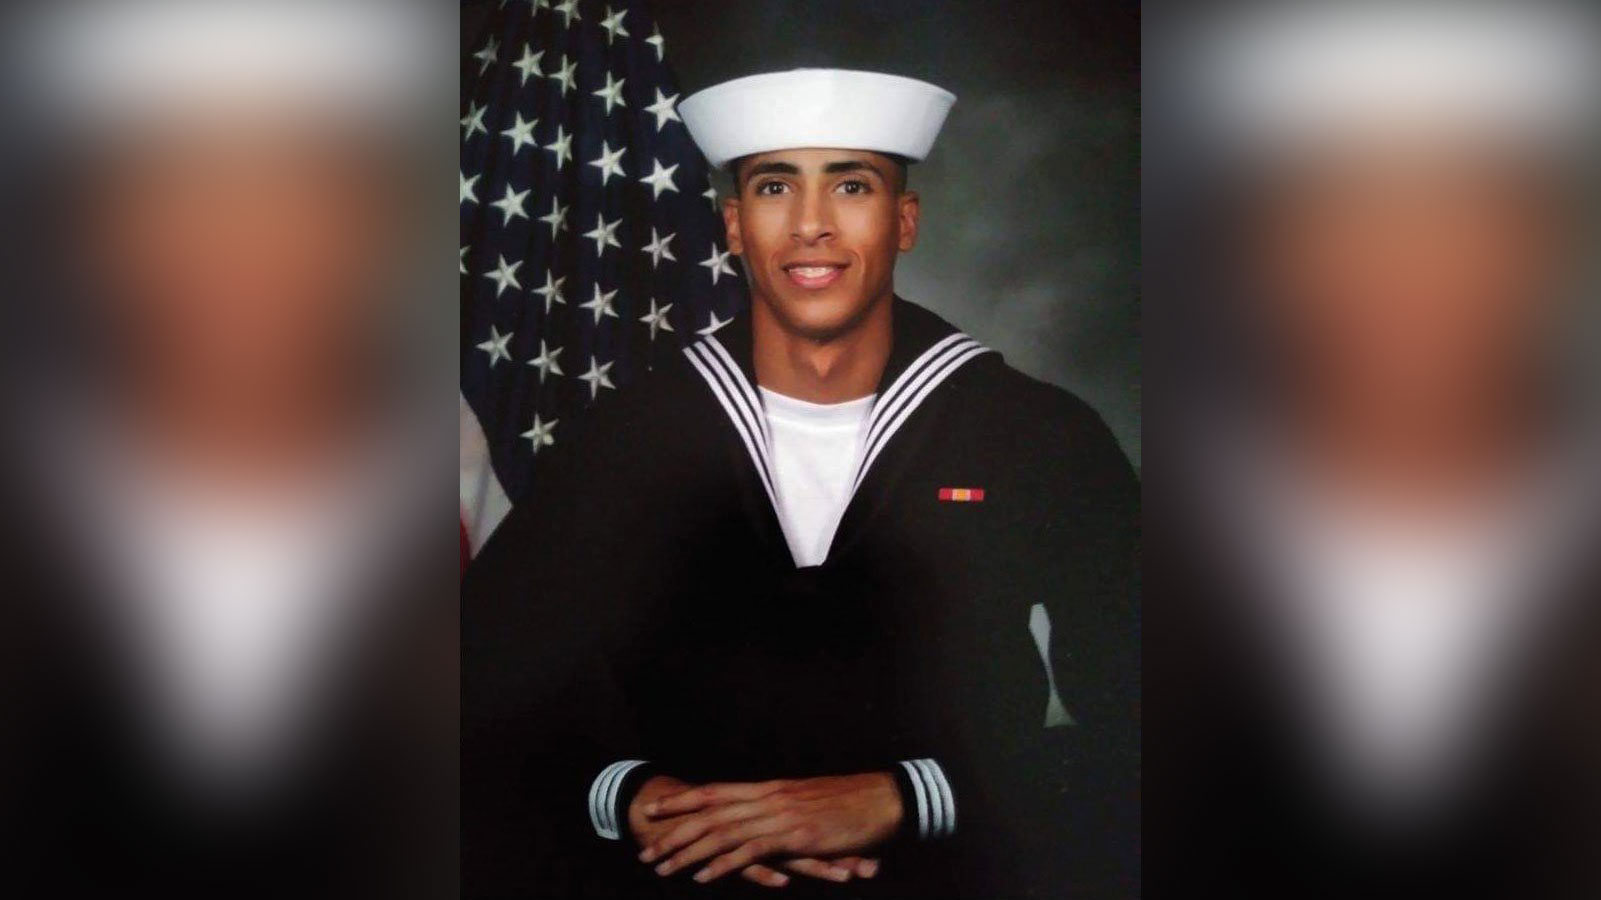 Sailors killed at Pensacola Navy base saved lives when they ran toward the gunman, officials say